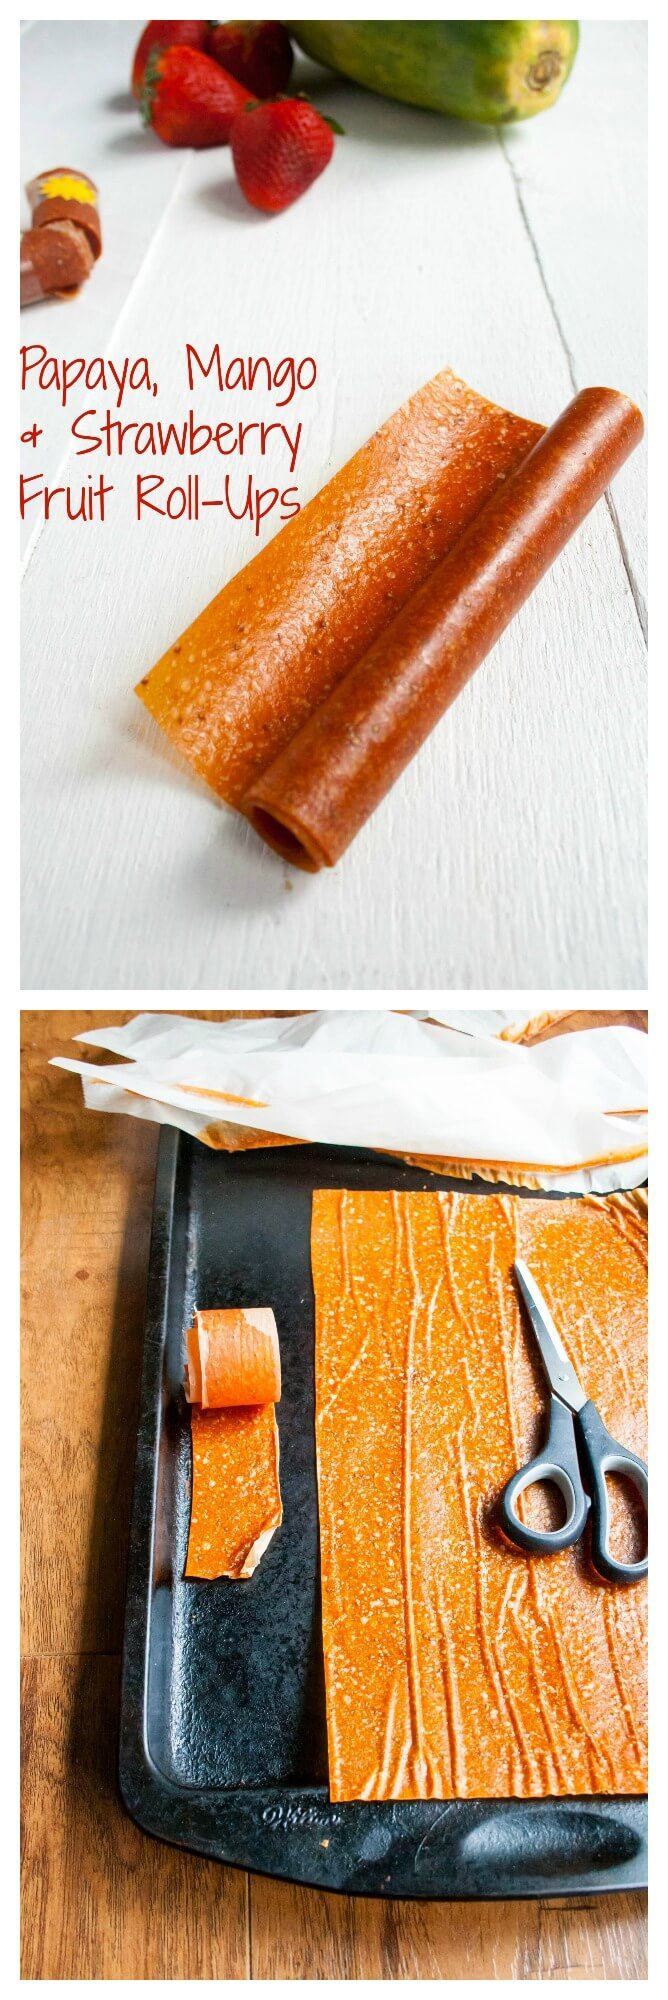 Delicious homemade fruit roll-ups made with papaya, mango and strawberry. It's a fantastic fruit combination, and so healthy! Your kids will love them.